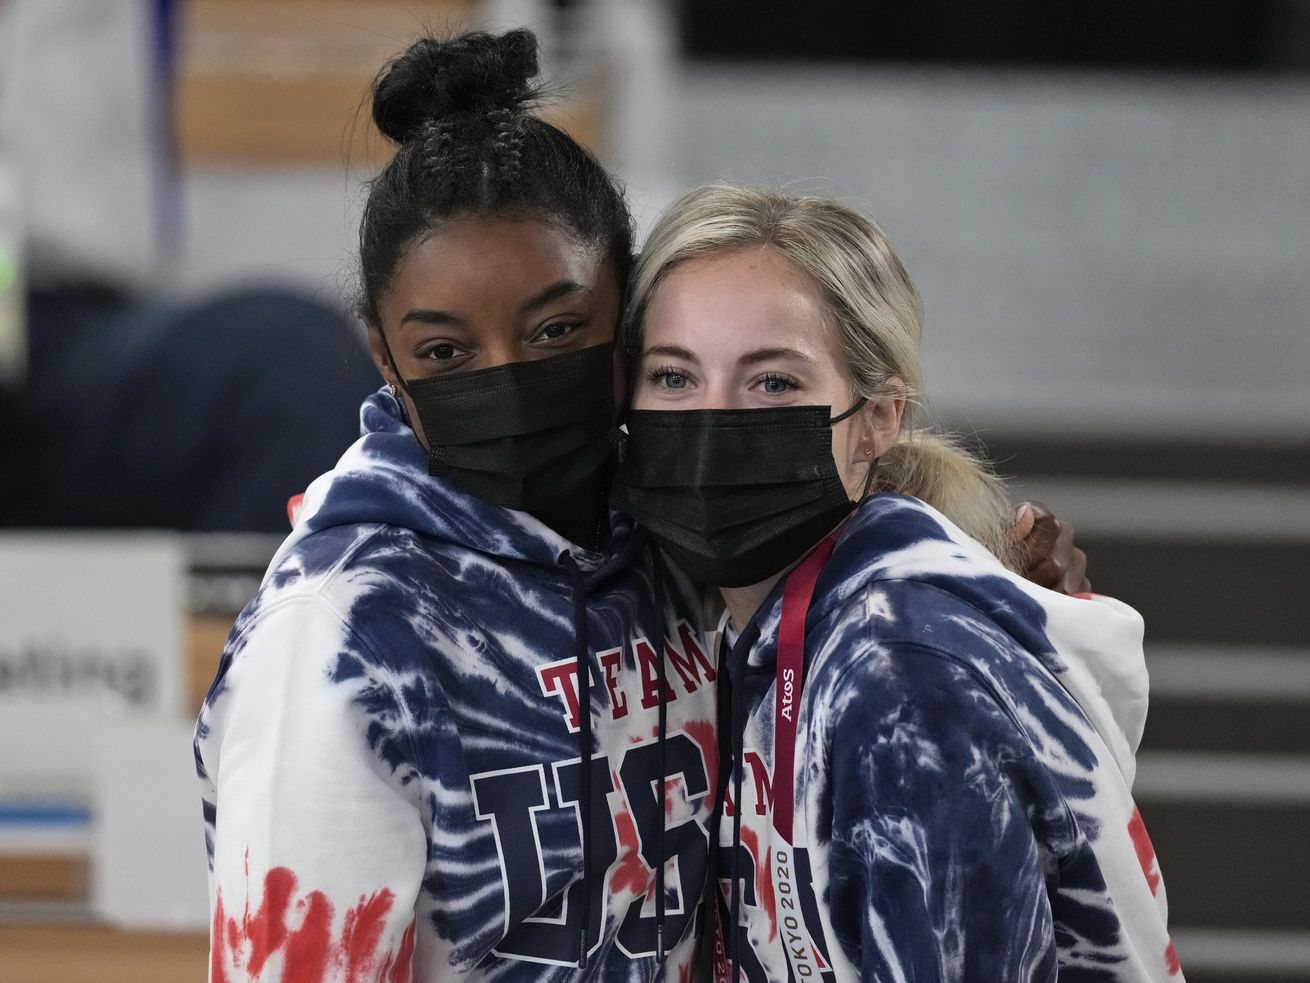 Could MyKayla Skinner fill in for Simone Biles in Olympic event finals?